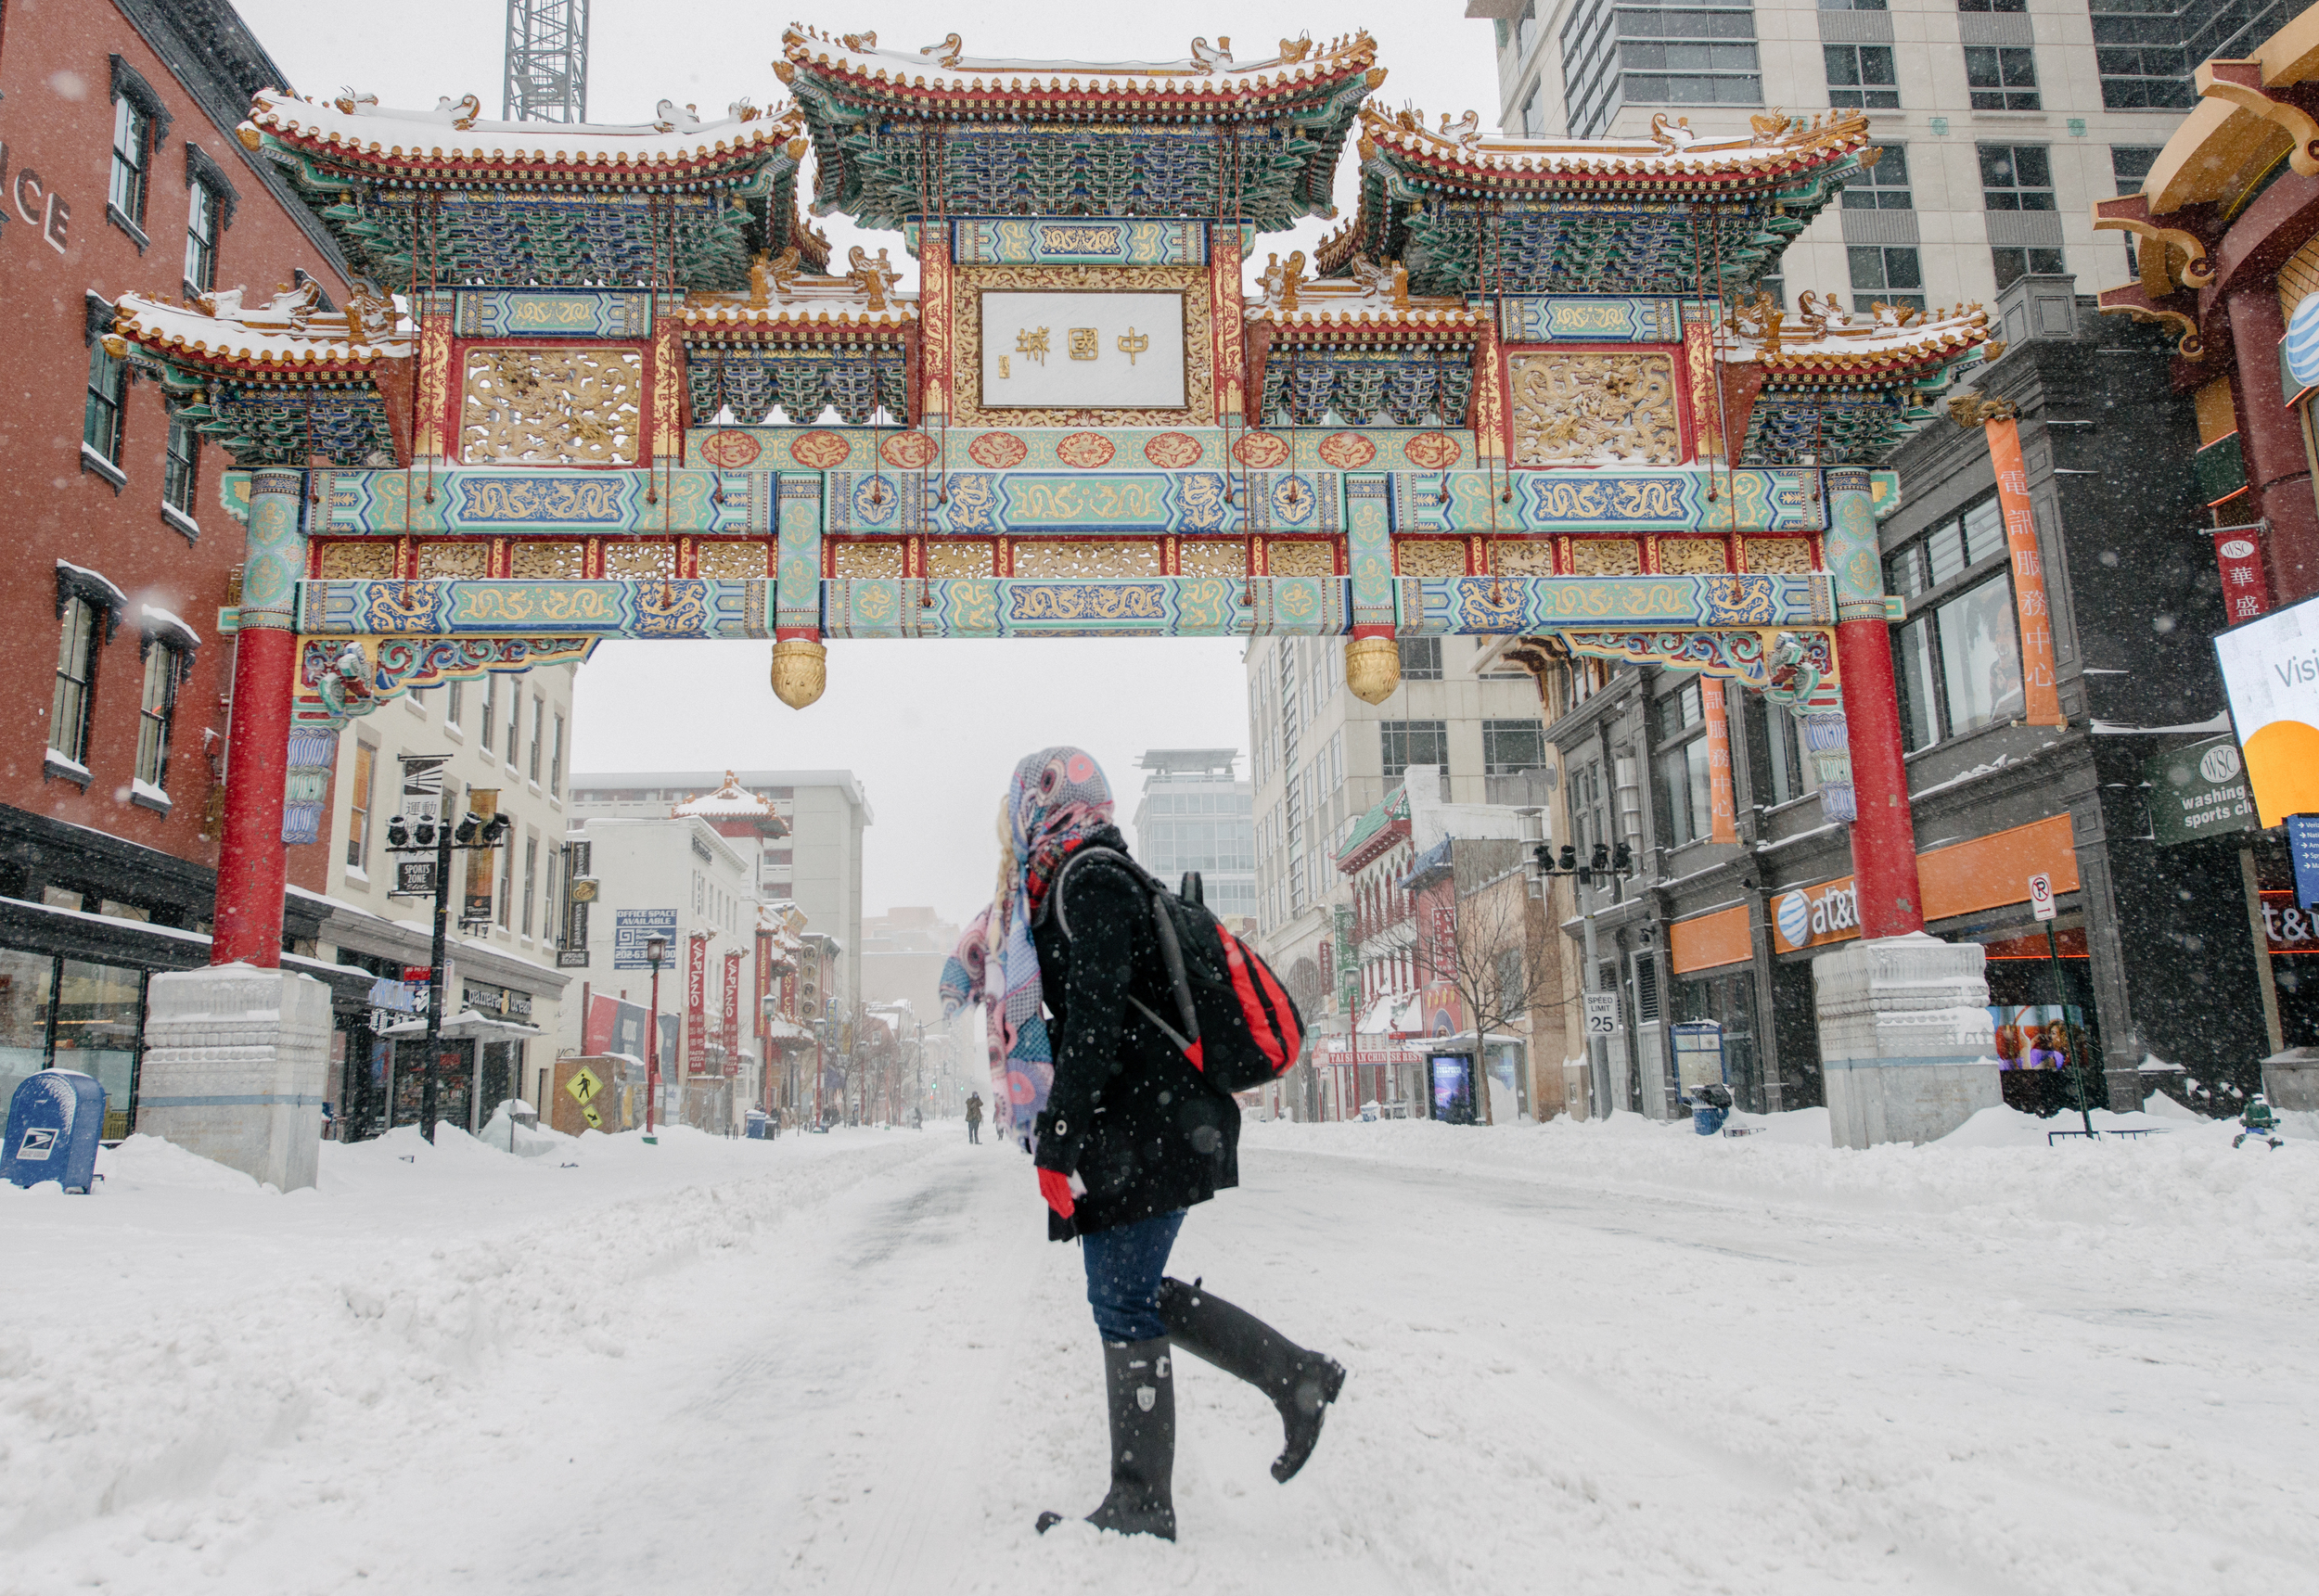 A pedestrian walks in China Town in Washington, D.C. on January 23, 2016. Snow storm Blizzard inundates the Nation's Capitol.